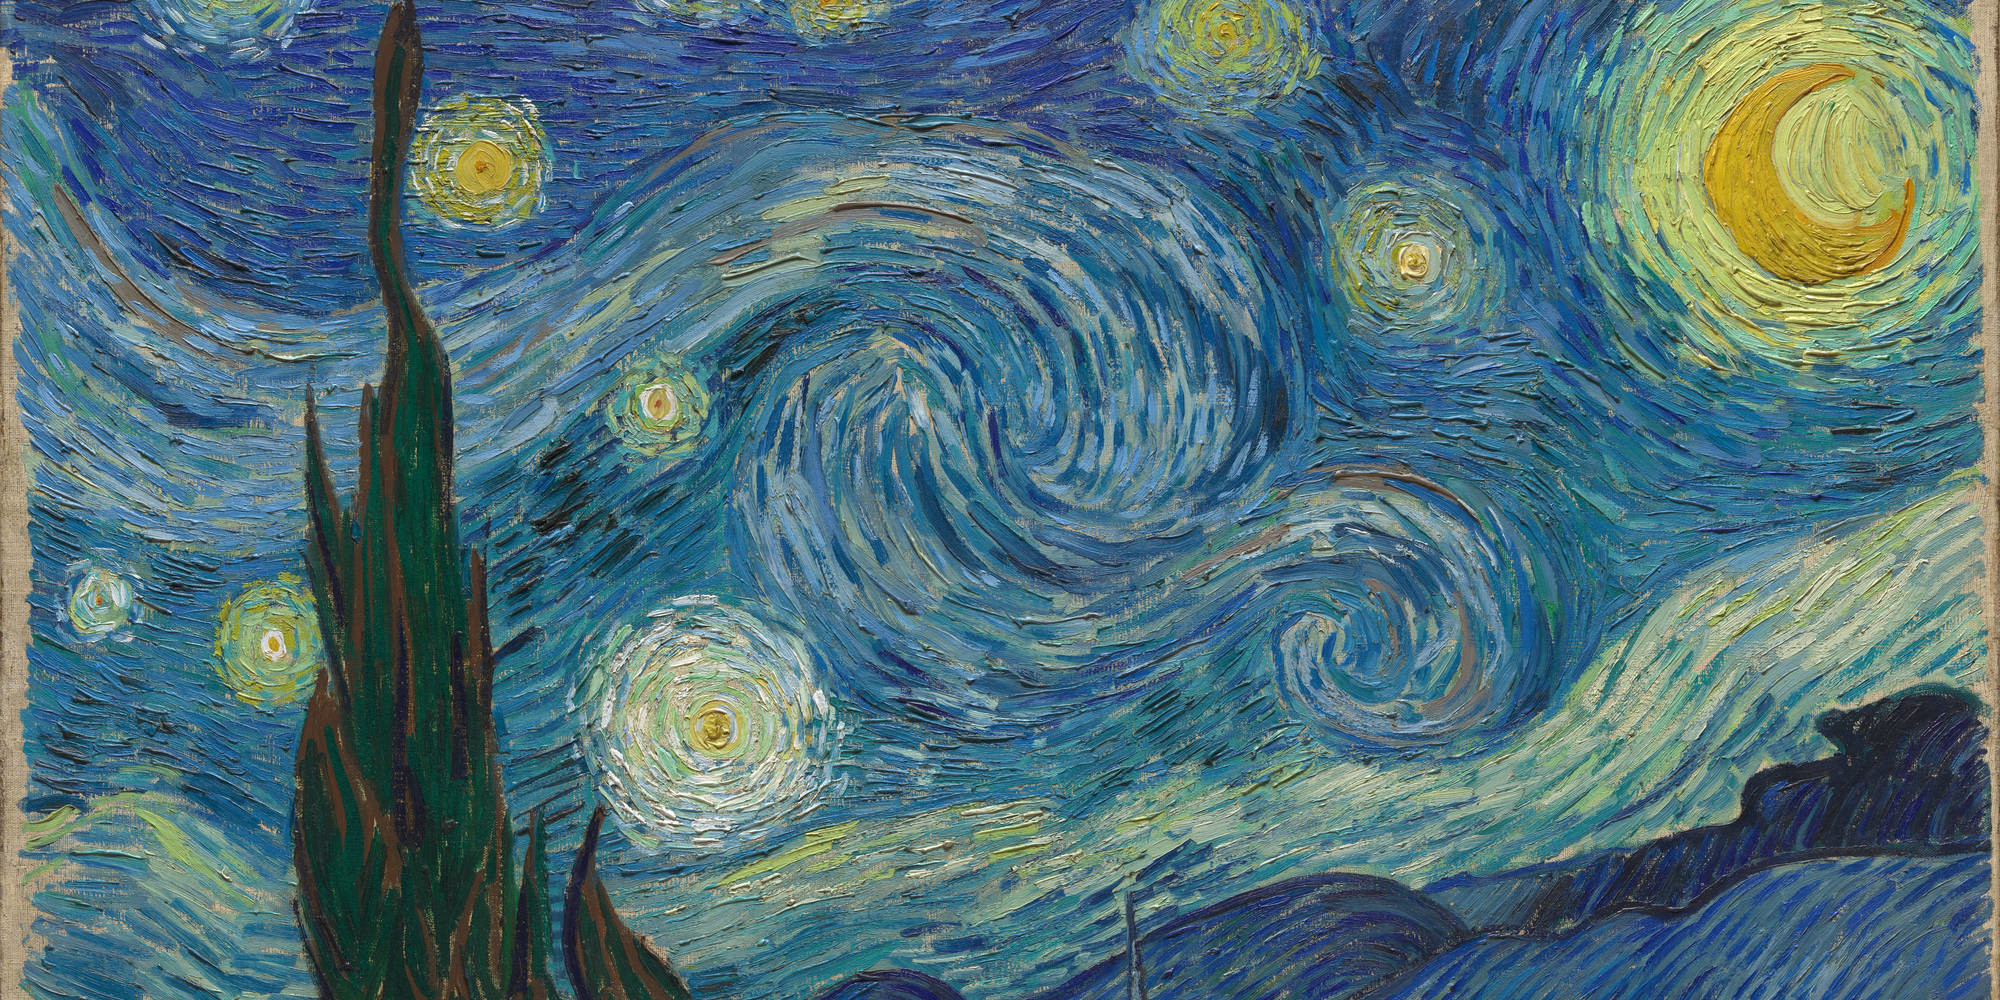 "Vincent van Gogh. The Starry Night. 1889. Oil on canvas, 29 × 36 1/4"" (73.7 × 92.1 cm). Acquired through the Lillie P. Bliss Bequest (by exchange). Conservation was made possible by the Bank of America Art Conservation Project"